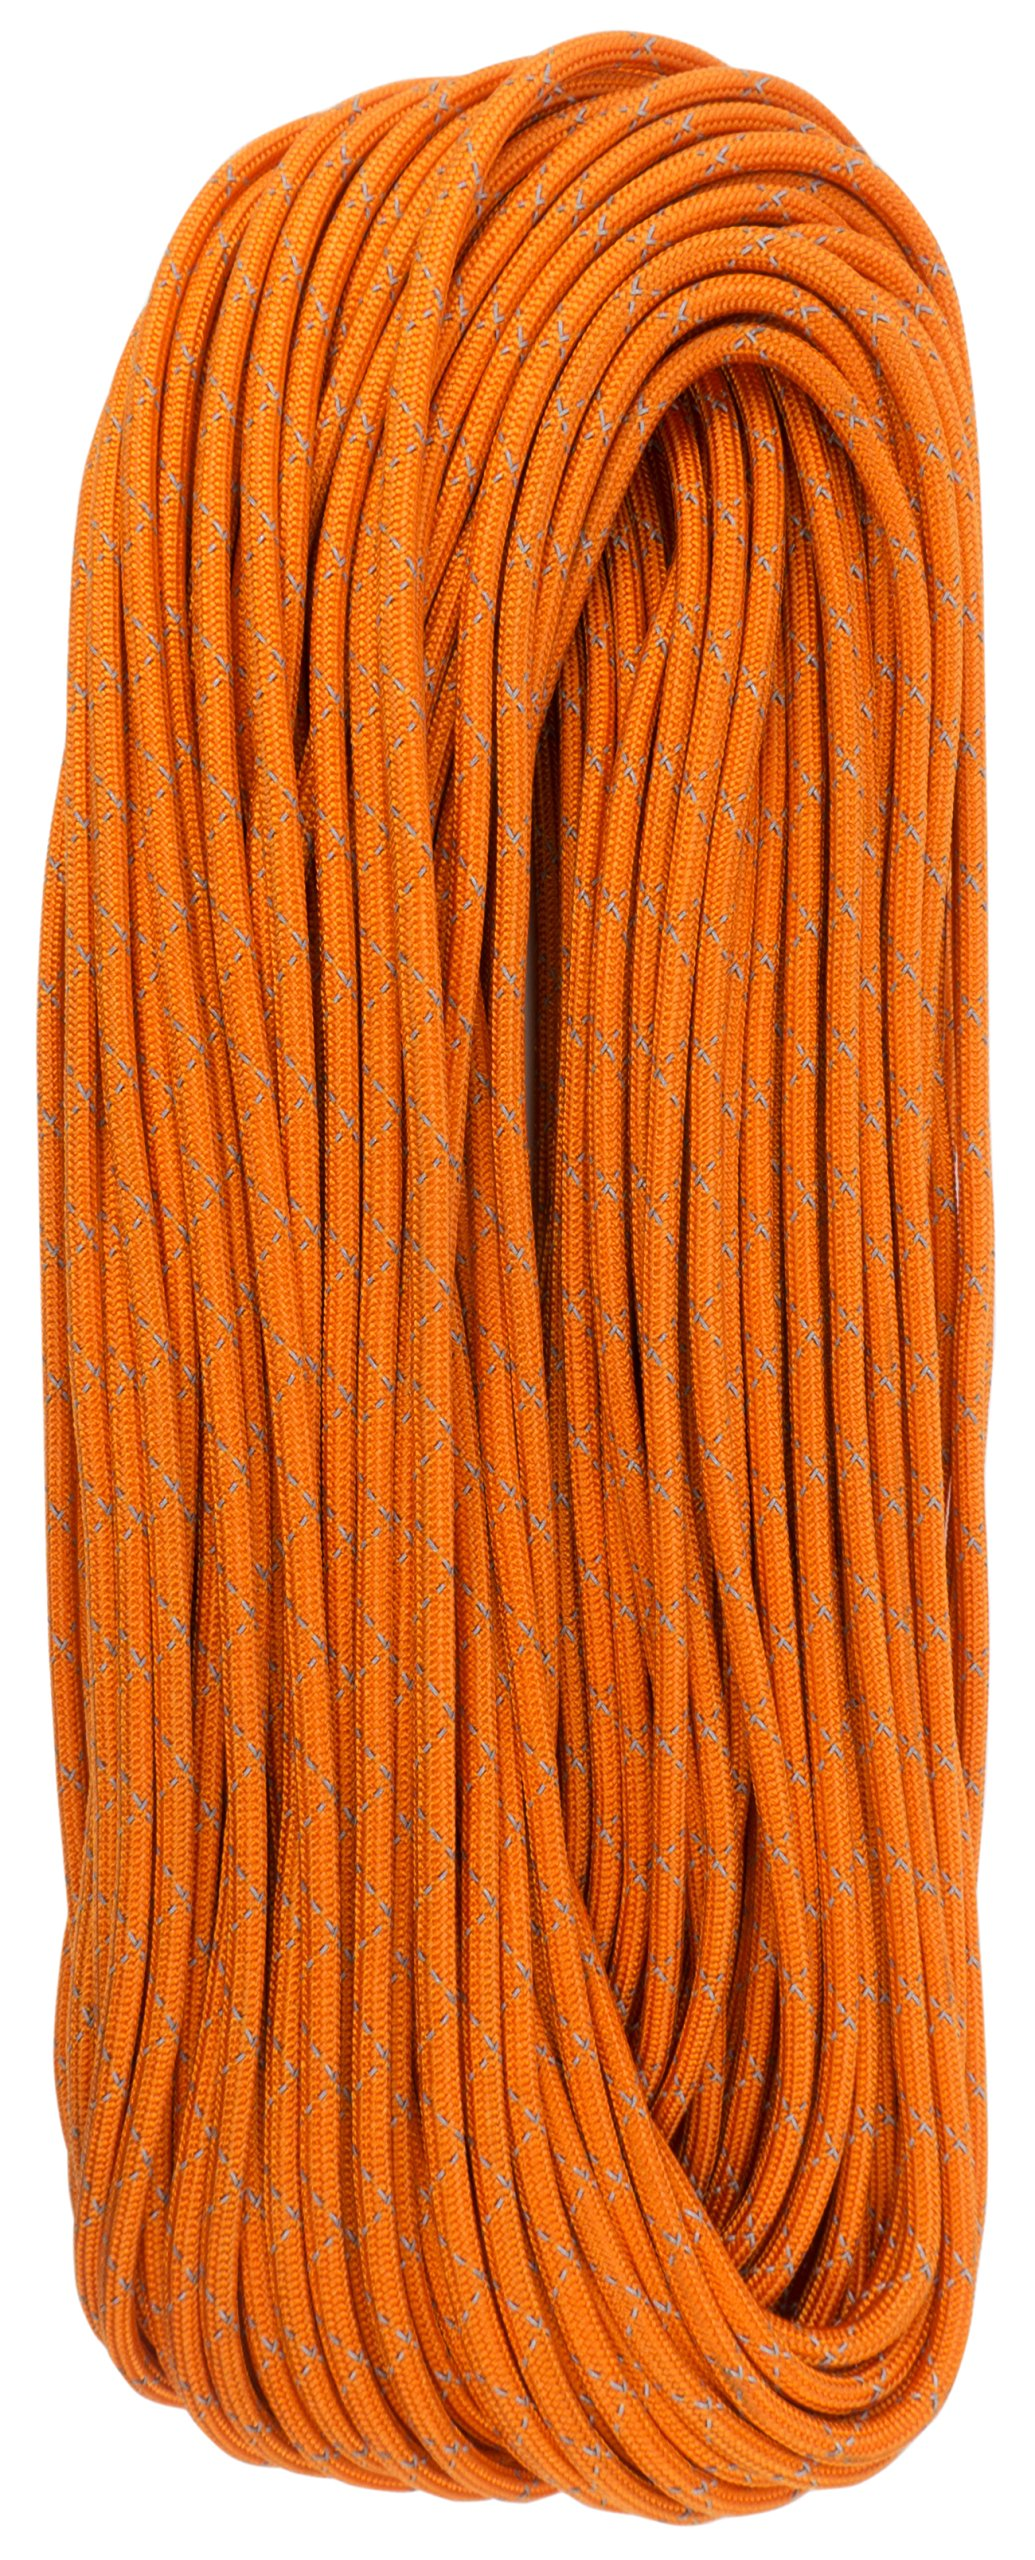 TOUGH-GRID New 700lb Double-Reflective Paracord/Parachute Cord - 2 Vibrant Retro-Reflective Strands for The Ultimate High-Visibility Cord - 100% Nylon - Made in USA - 100Ft. Neon Orange Reflective by TOUGH-GRID (Image #6)